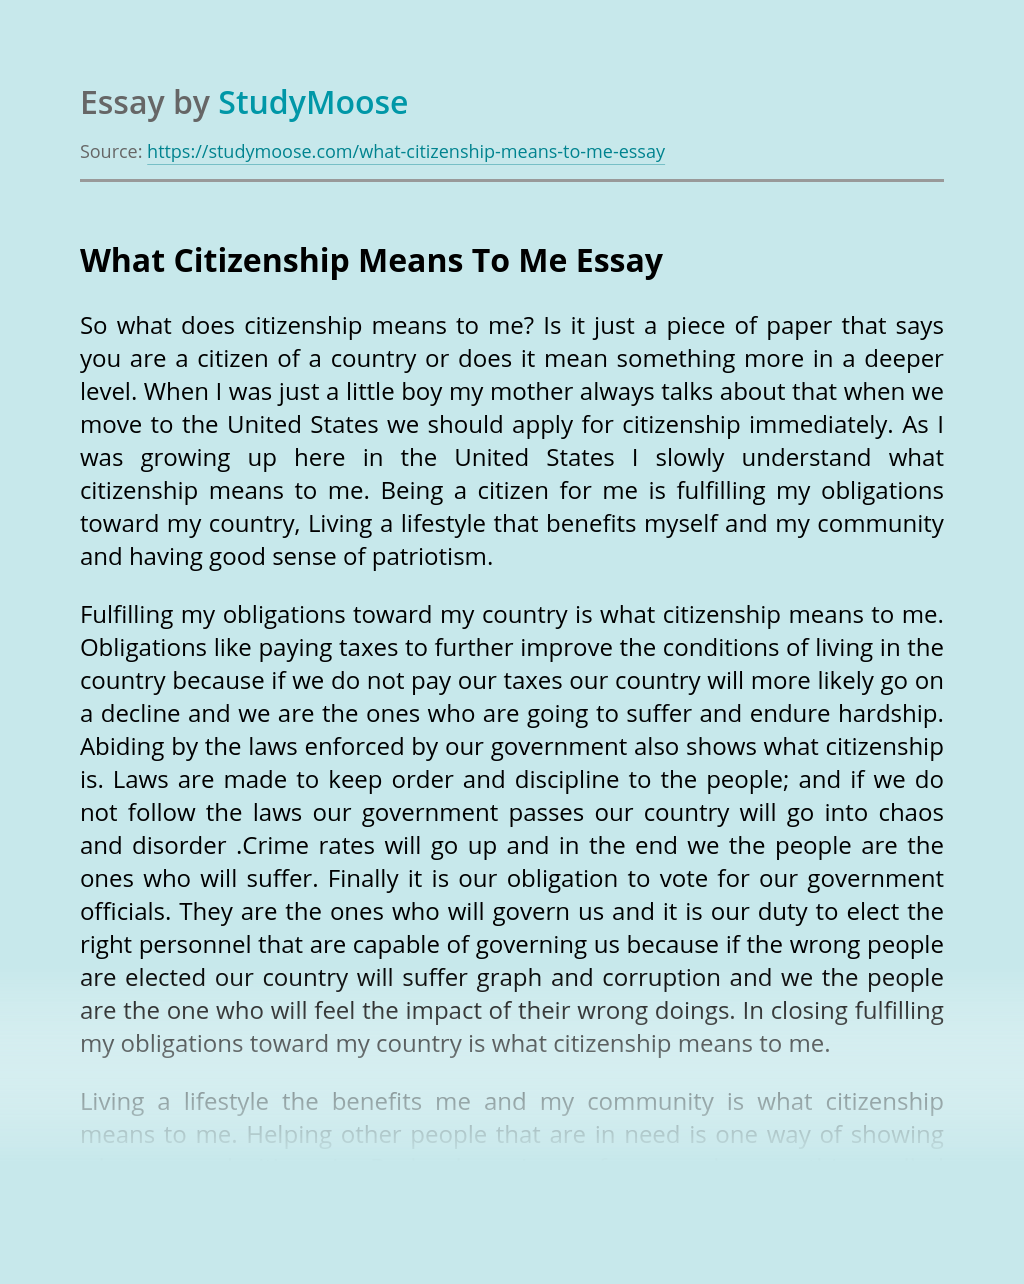 What Citizenship Means To Me